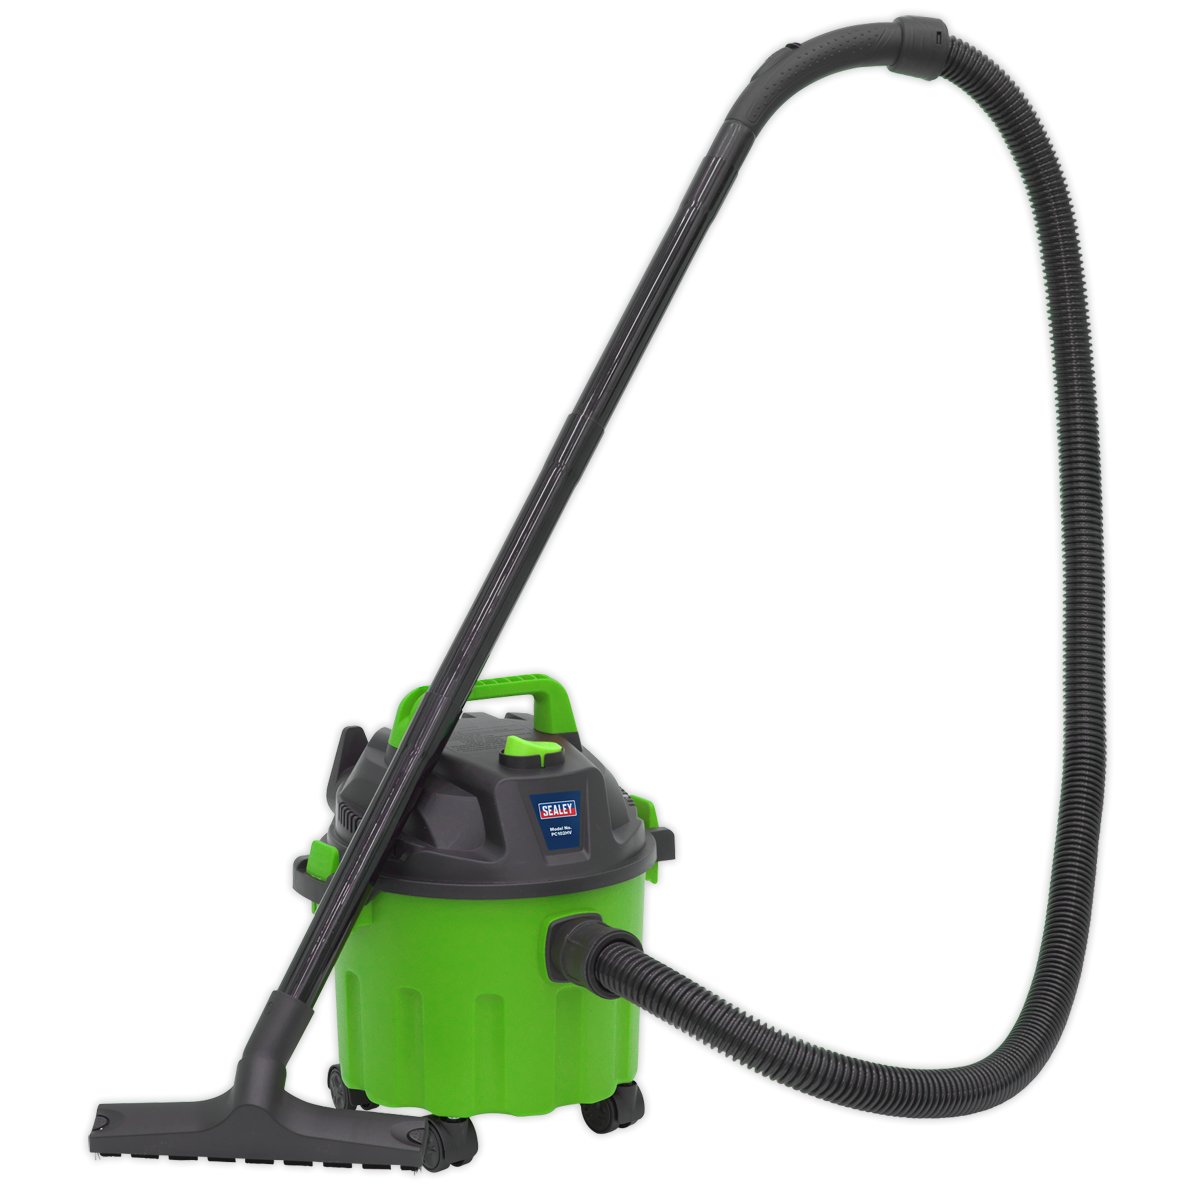 SEALEY VACUUM CLEANER WET/DRY 10L 1000W/230V - Hi-Vis Green